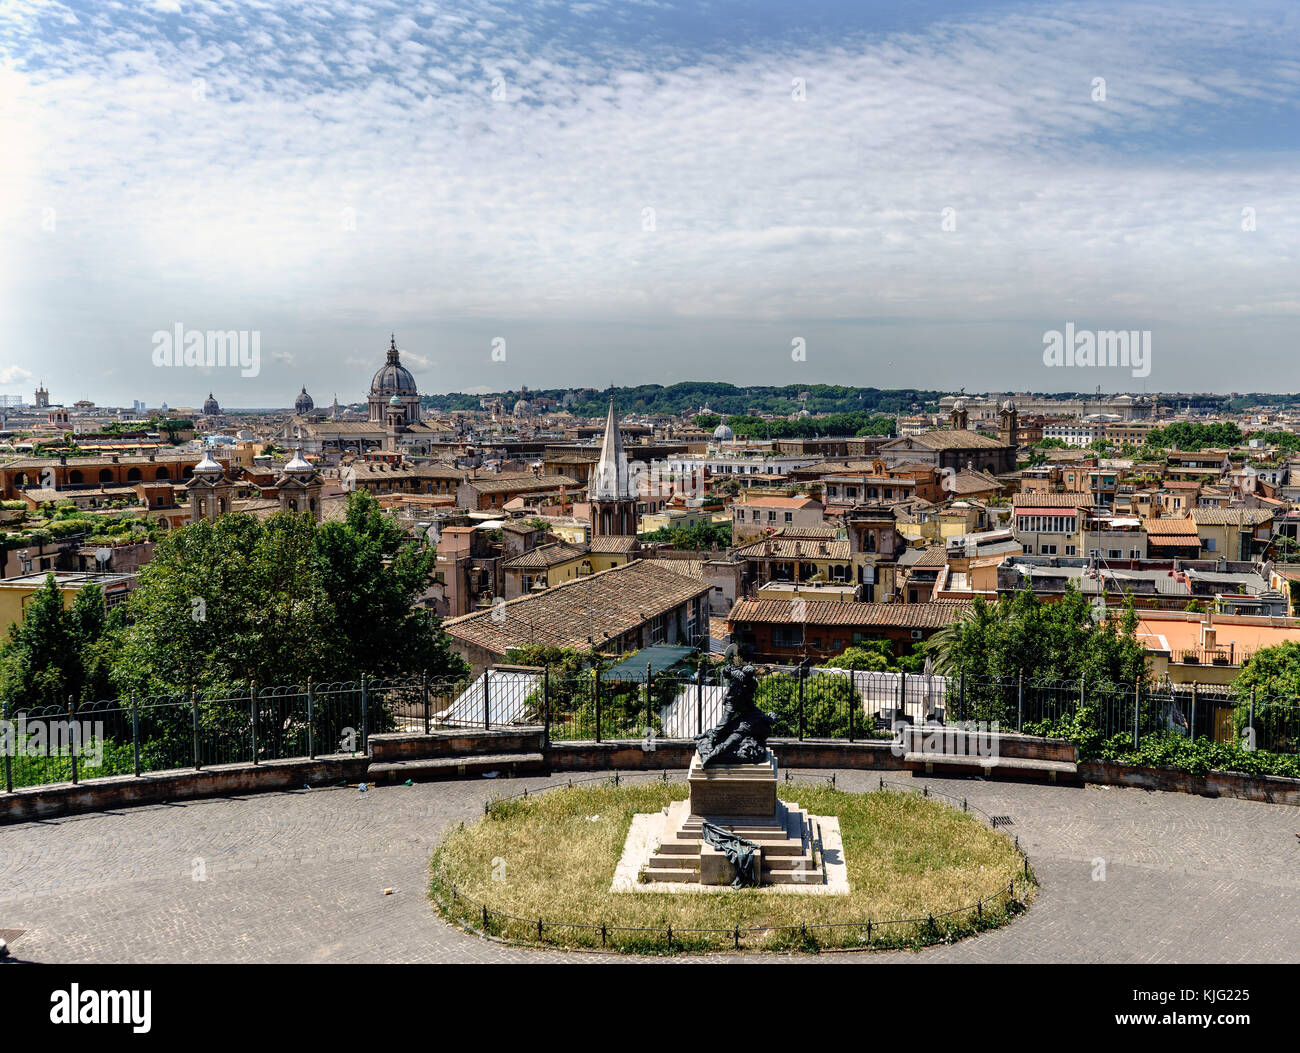 Italian Ambience Stock Photos Italian Ambience Stock